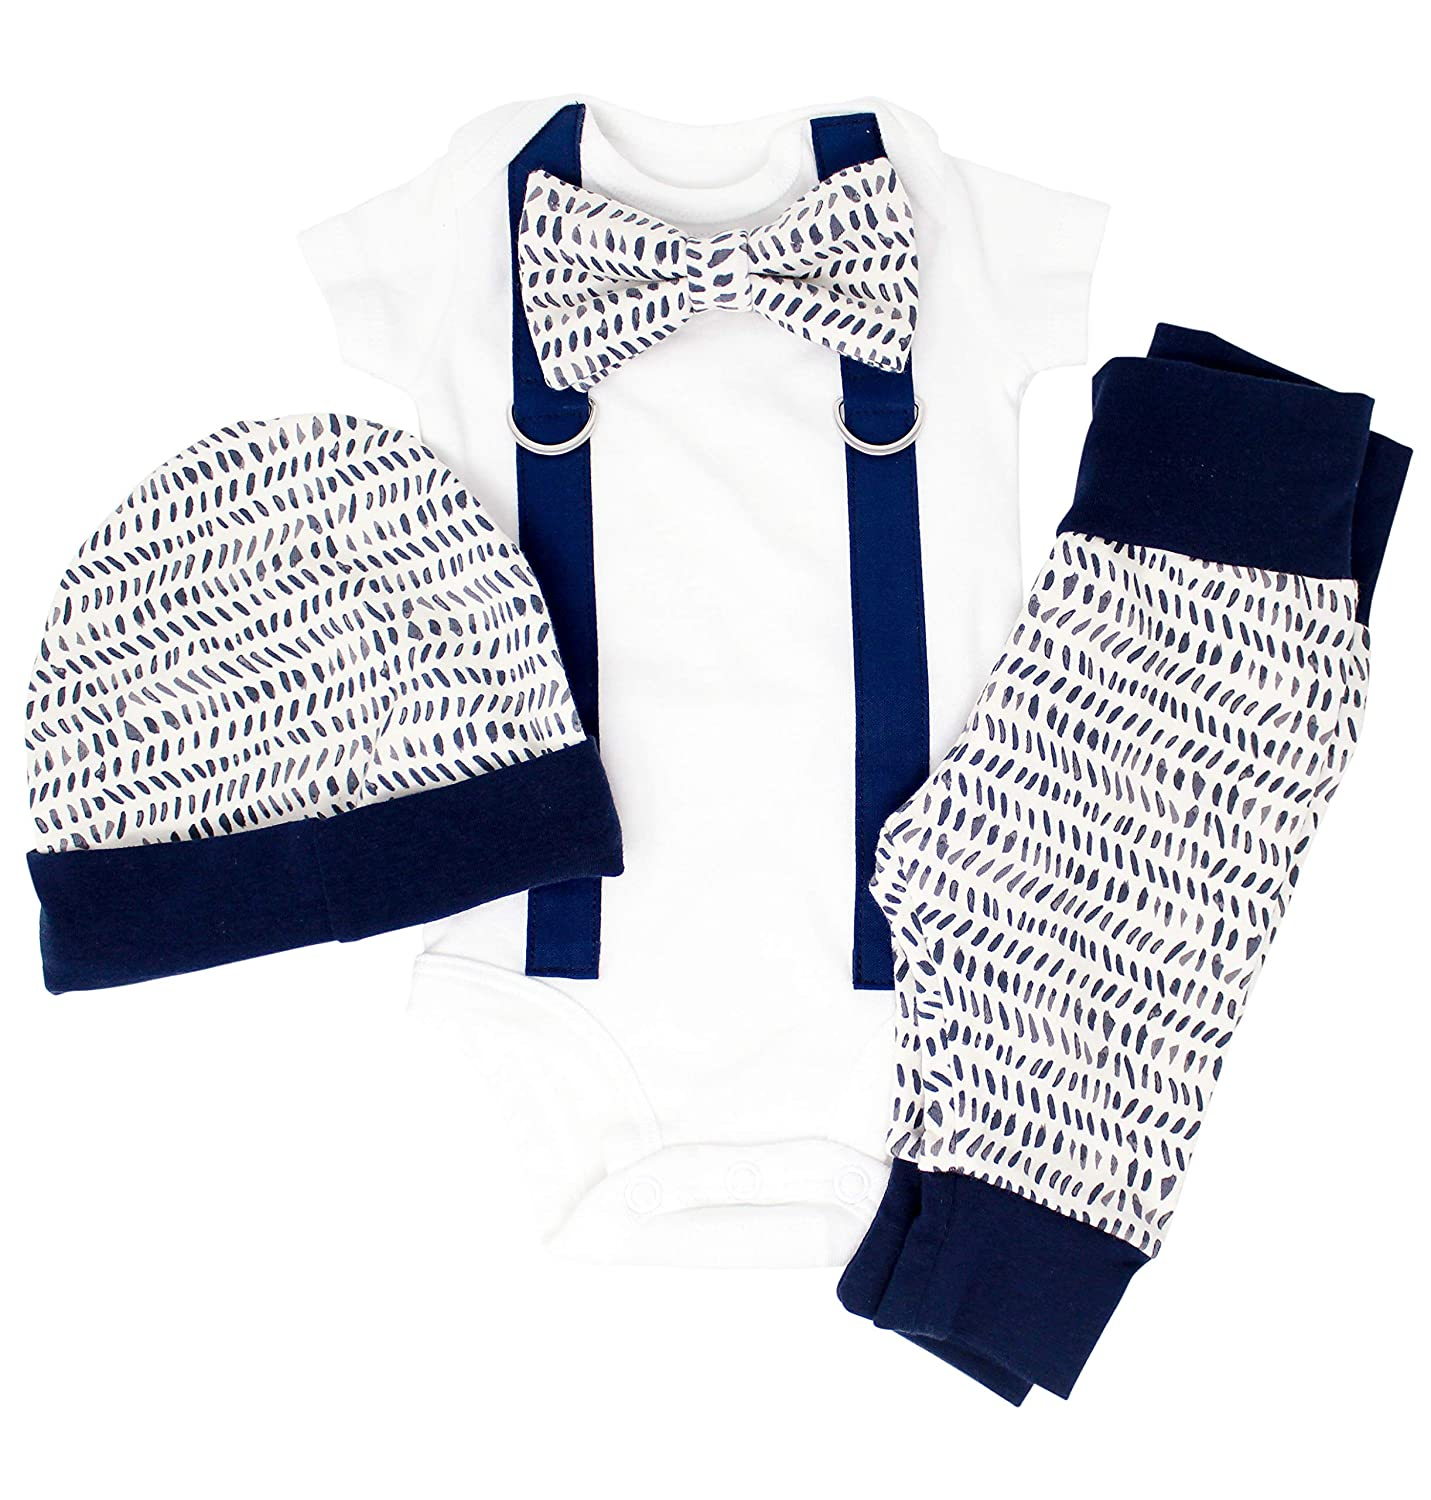 47fc001f4639 Amazon.com  Baby boy Coming Home Outfit in Navy with hat. Newborn Clothes  for boy. Leggings and Beanie. Boho Hipster  Clothing